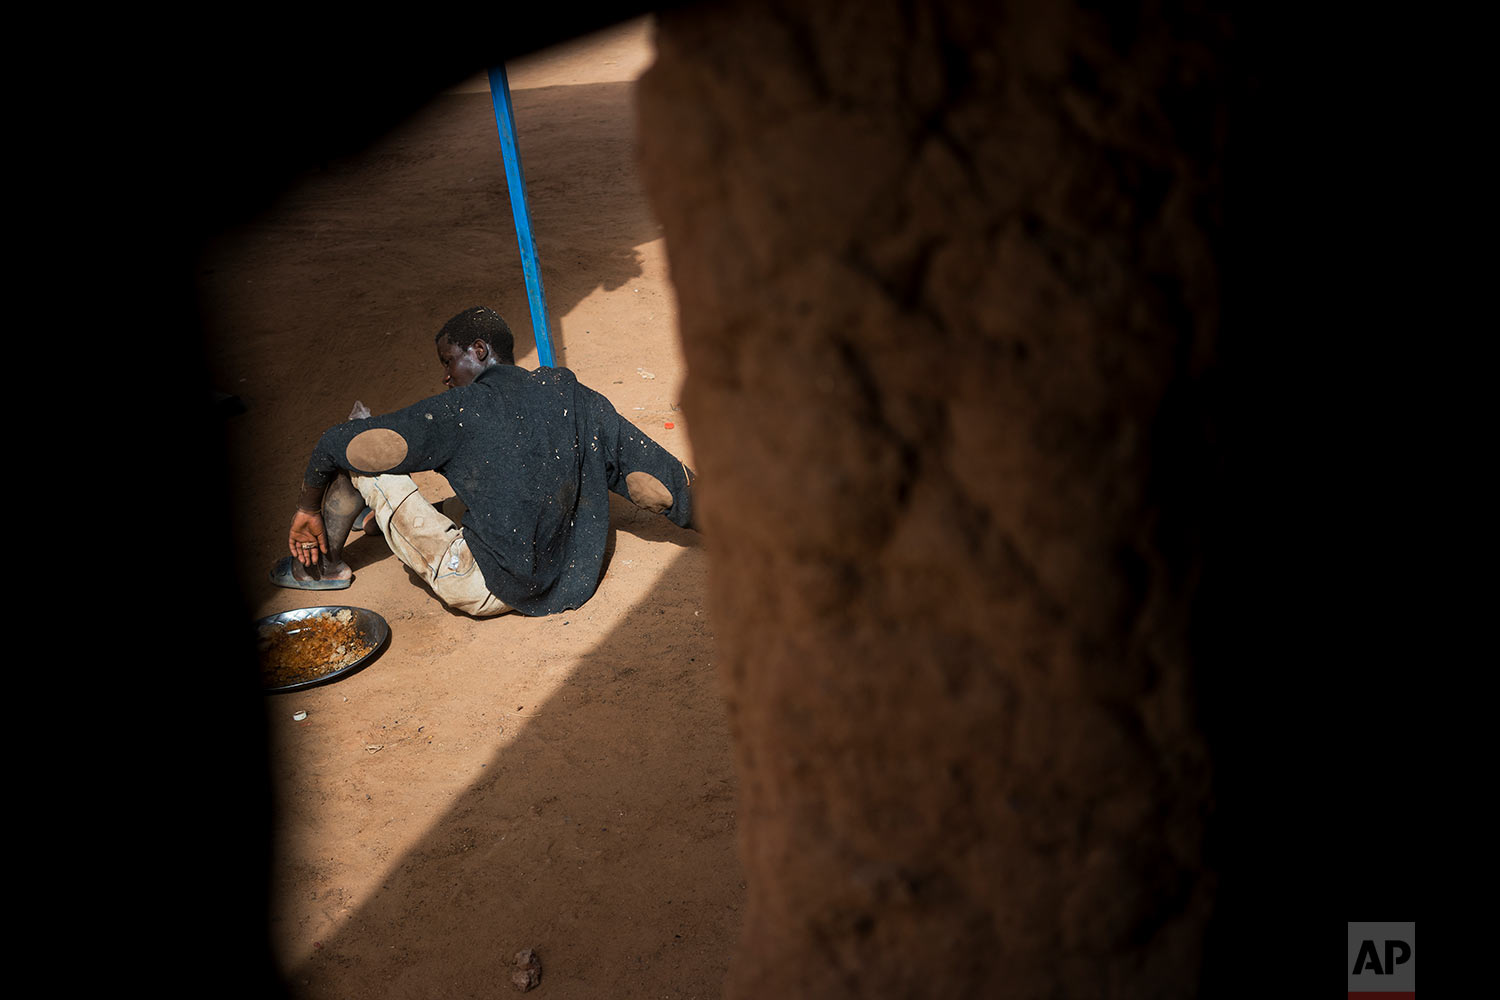 A young migrant who has been expelled from Algeria sits in a transit center in Arlit, Niger, on June 1, 2018. (AP Photo/Jerome Delay)